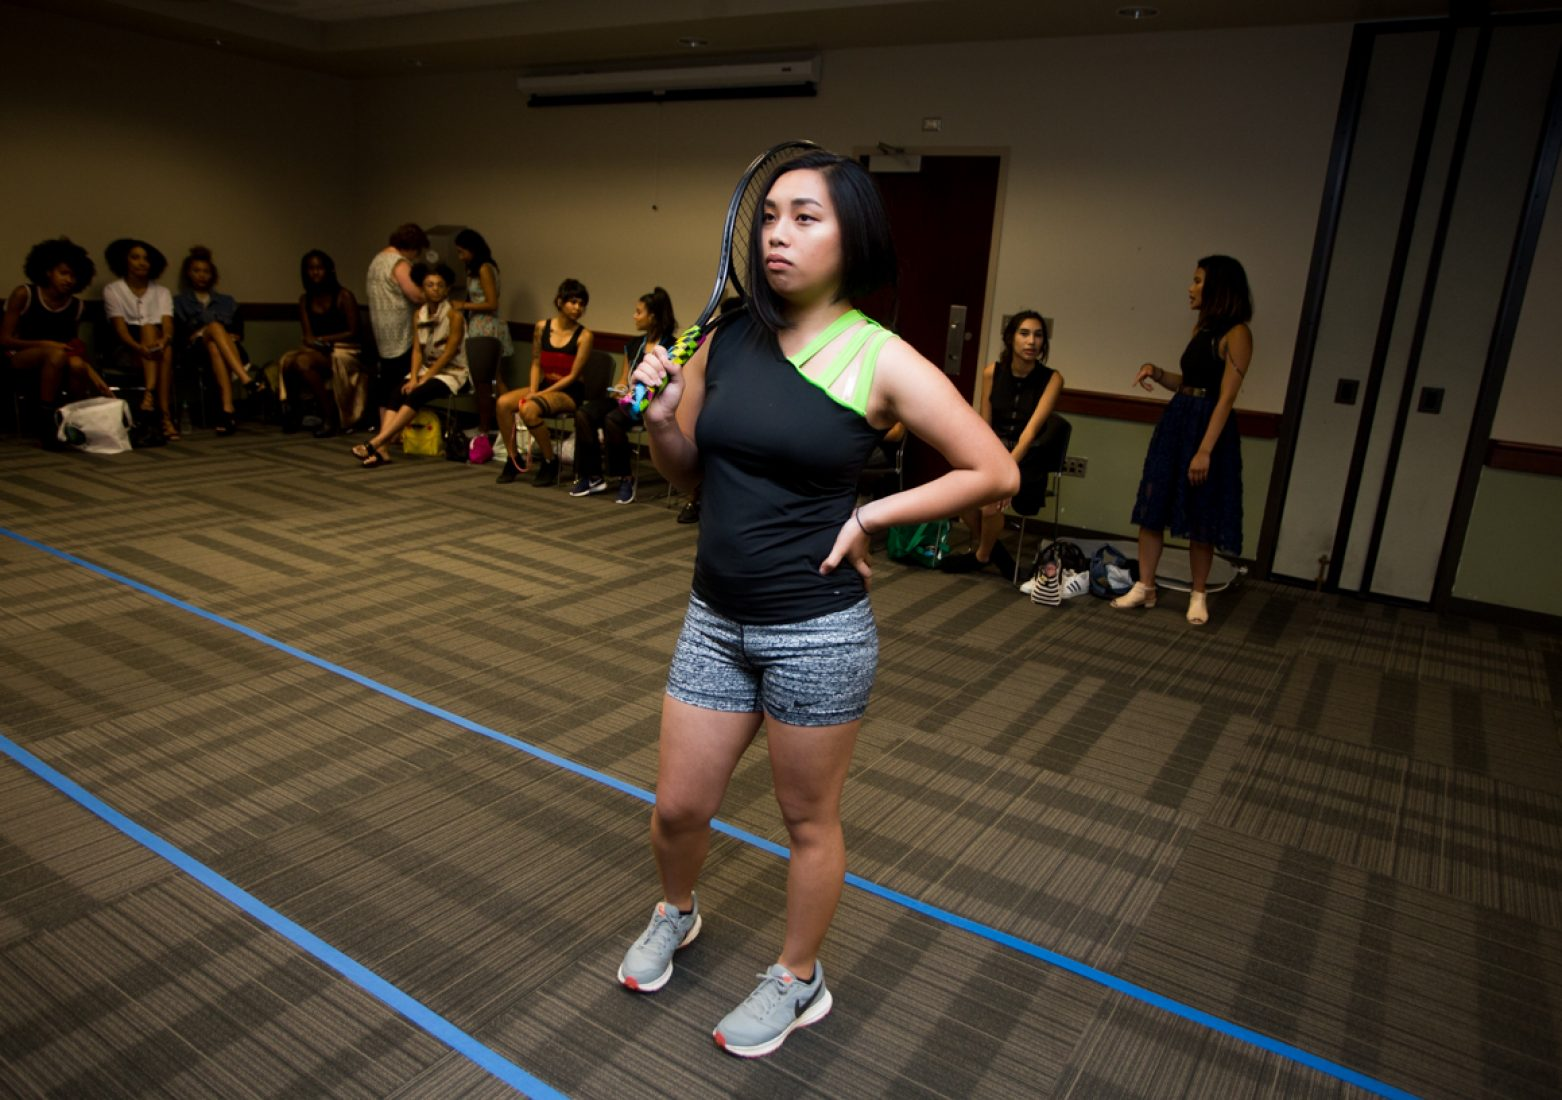 A model practices her runway walk in a Phua Lee design during rehearsal in the University Union Foothill Suite on Wednesday. Lee uses bright colors in the designers of her 'Take the Hint' collection. (Photo by Nicole Fowler)